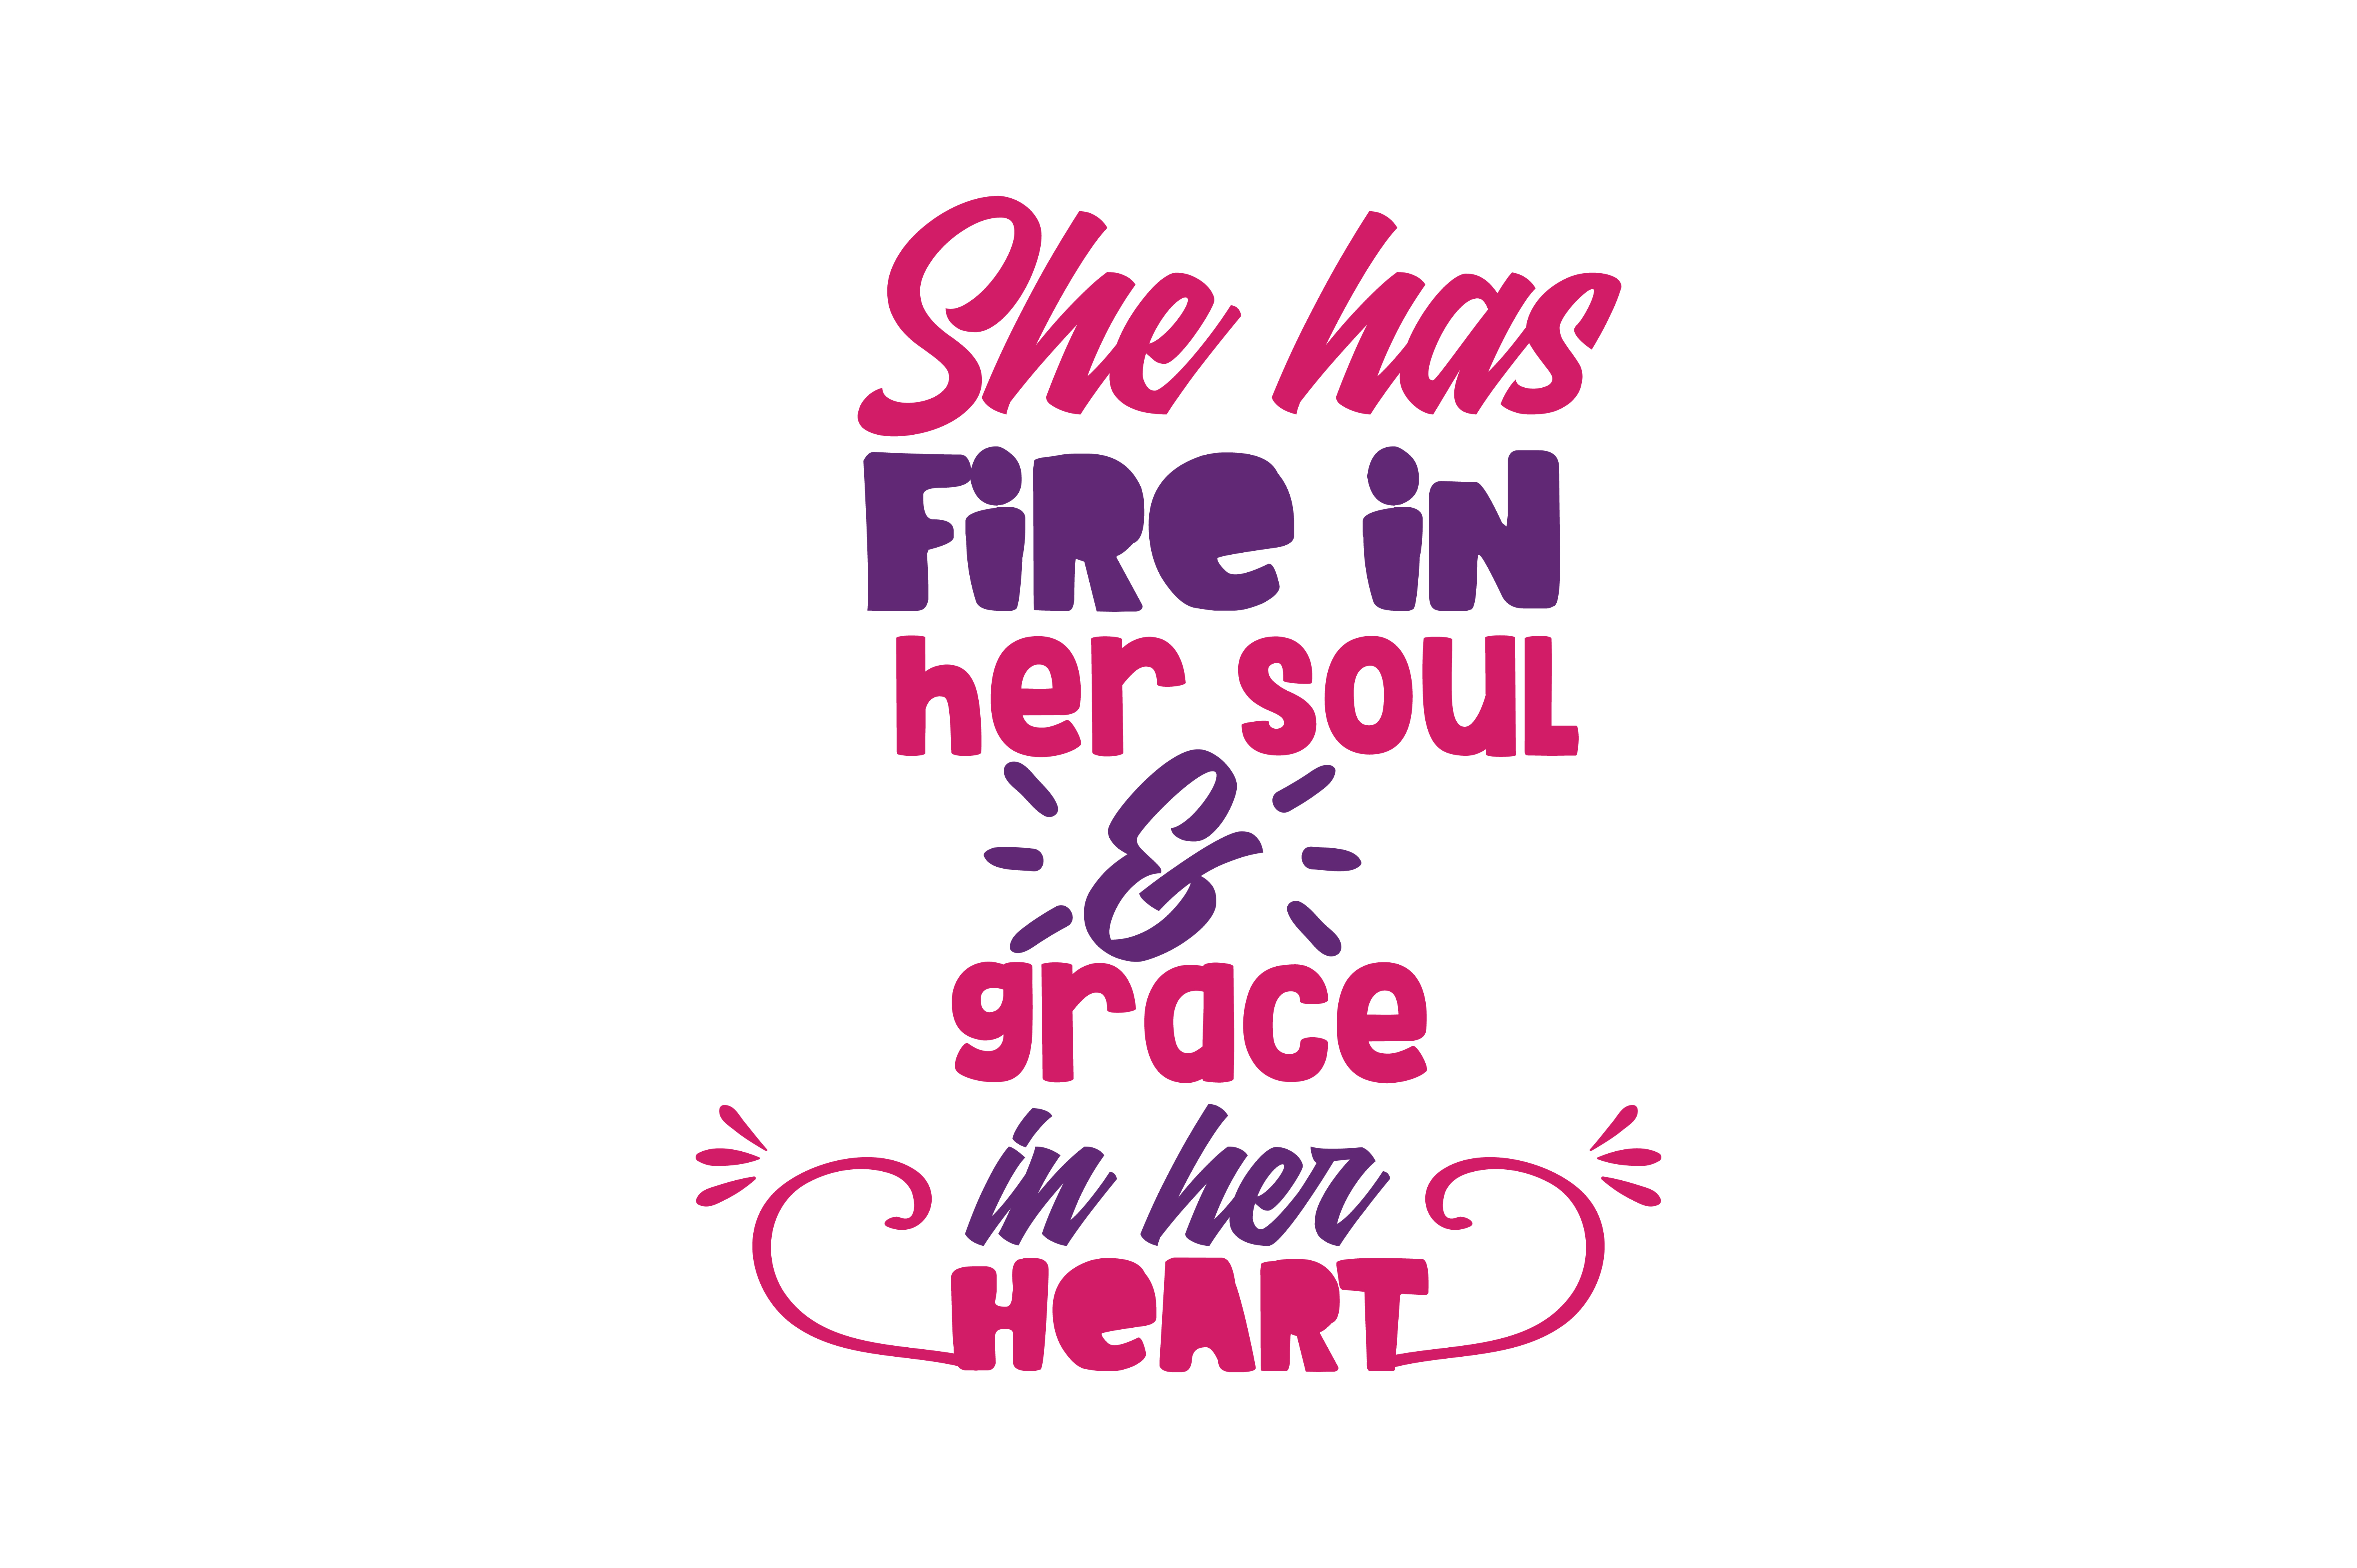 Download Free She Has Fire In Her Soul Grace In Her Heart Quote Svg Cut Graphic By Thelucky Creative Fabrica for Cricut Explore, Silhouette and other cutting machines.